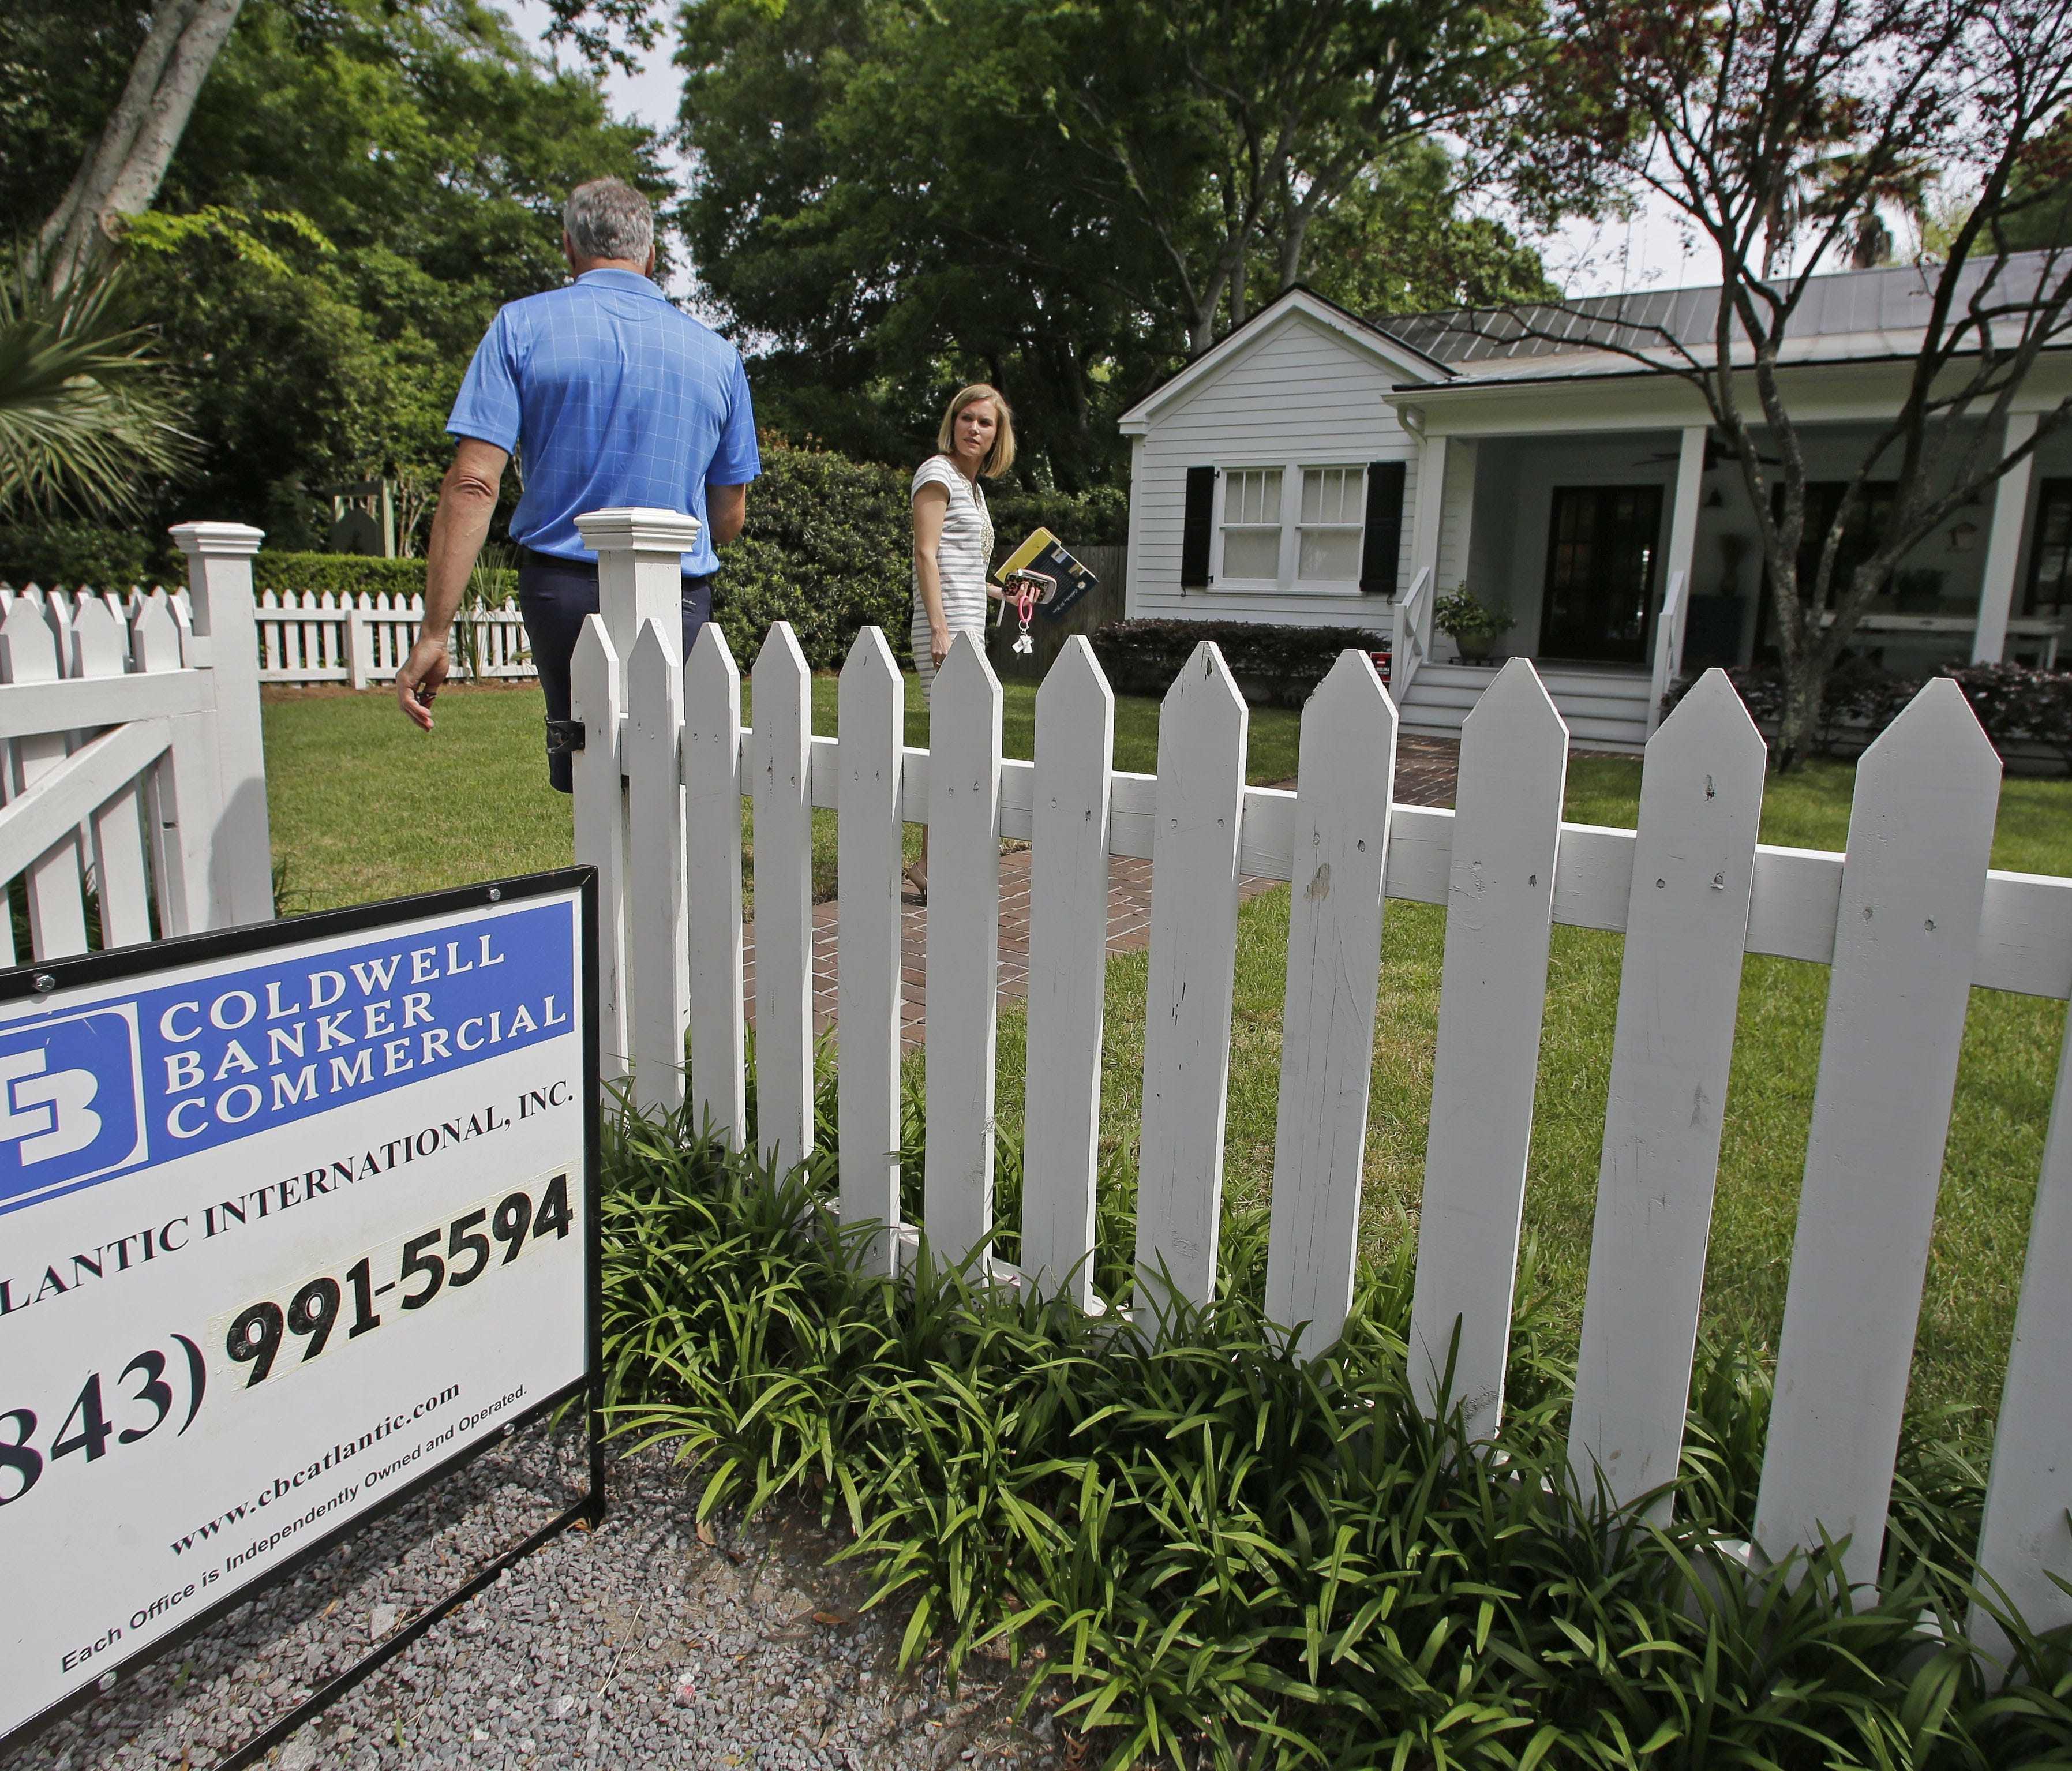 A real estate agent prepares to show a client a home for sale in Mount Pleasant, S.C.